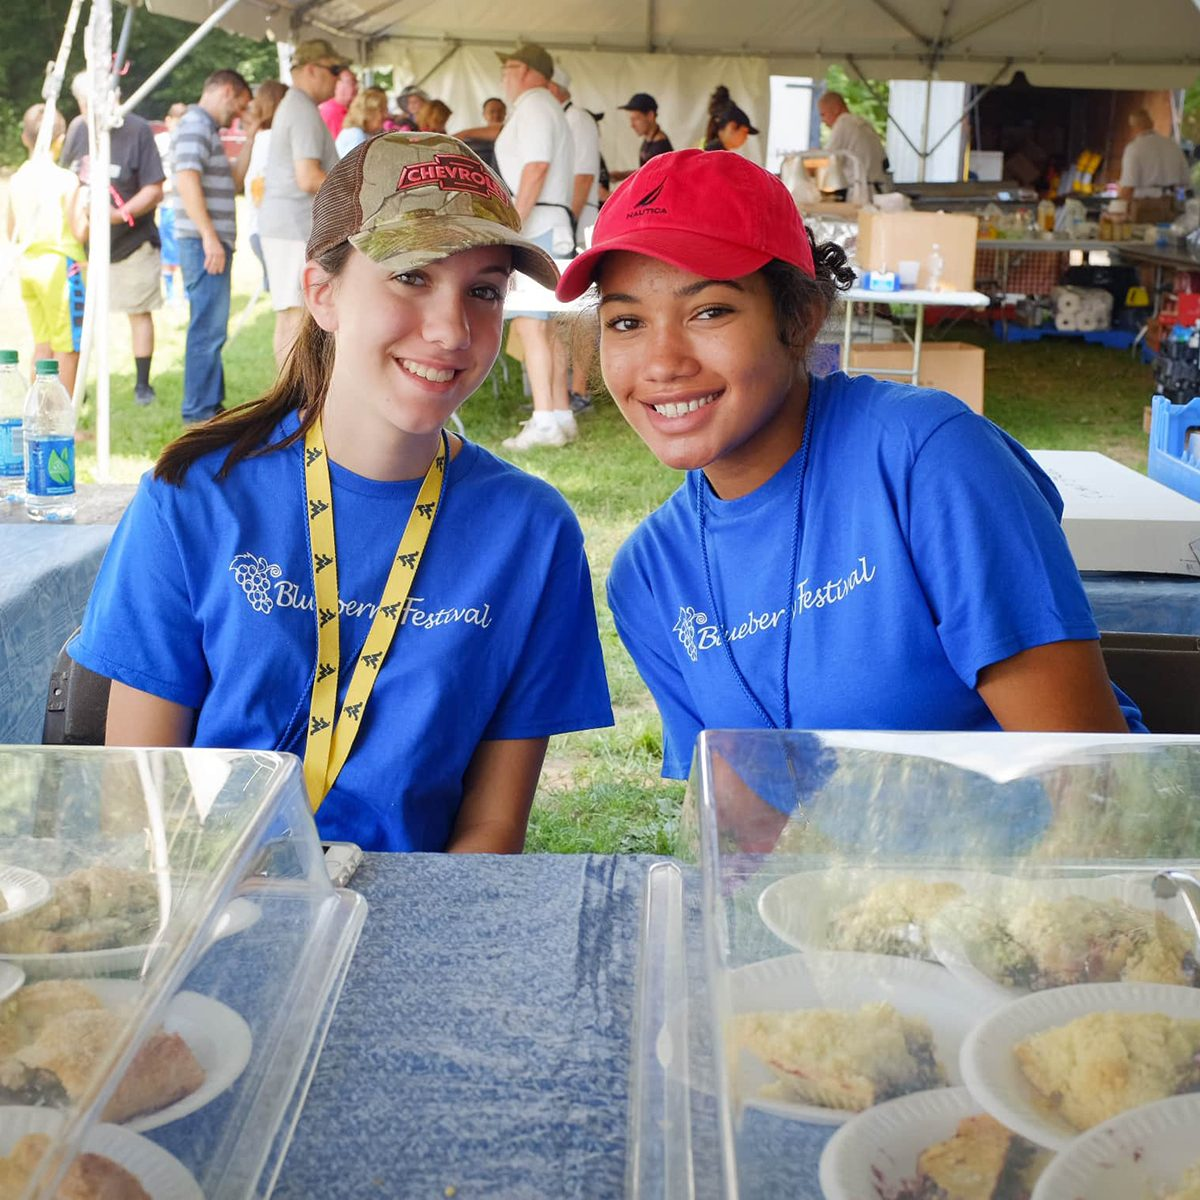 Two volunteers at the Blueberry Festival